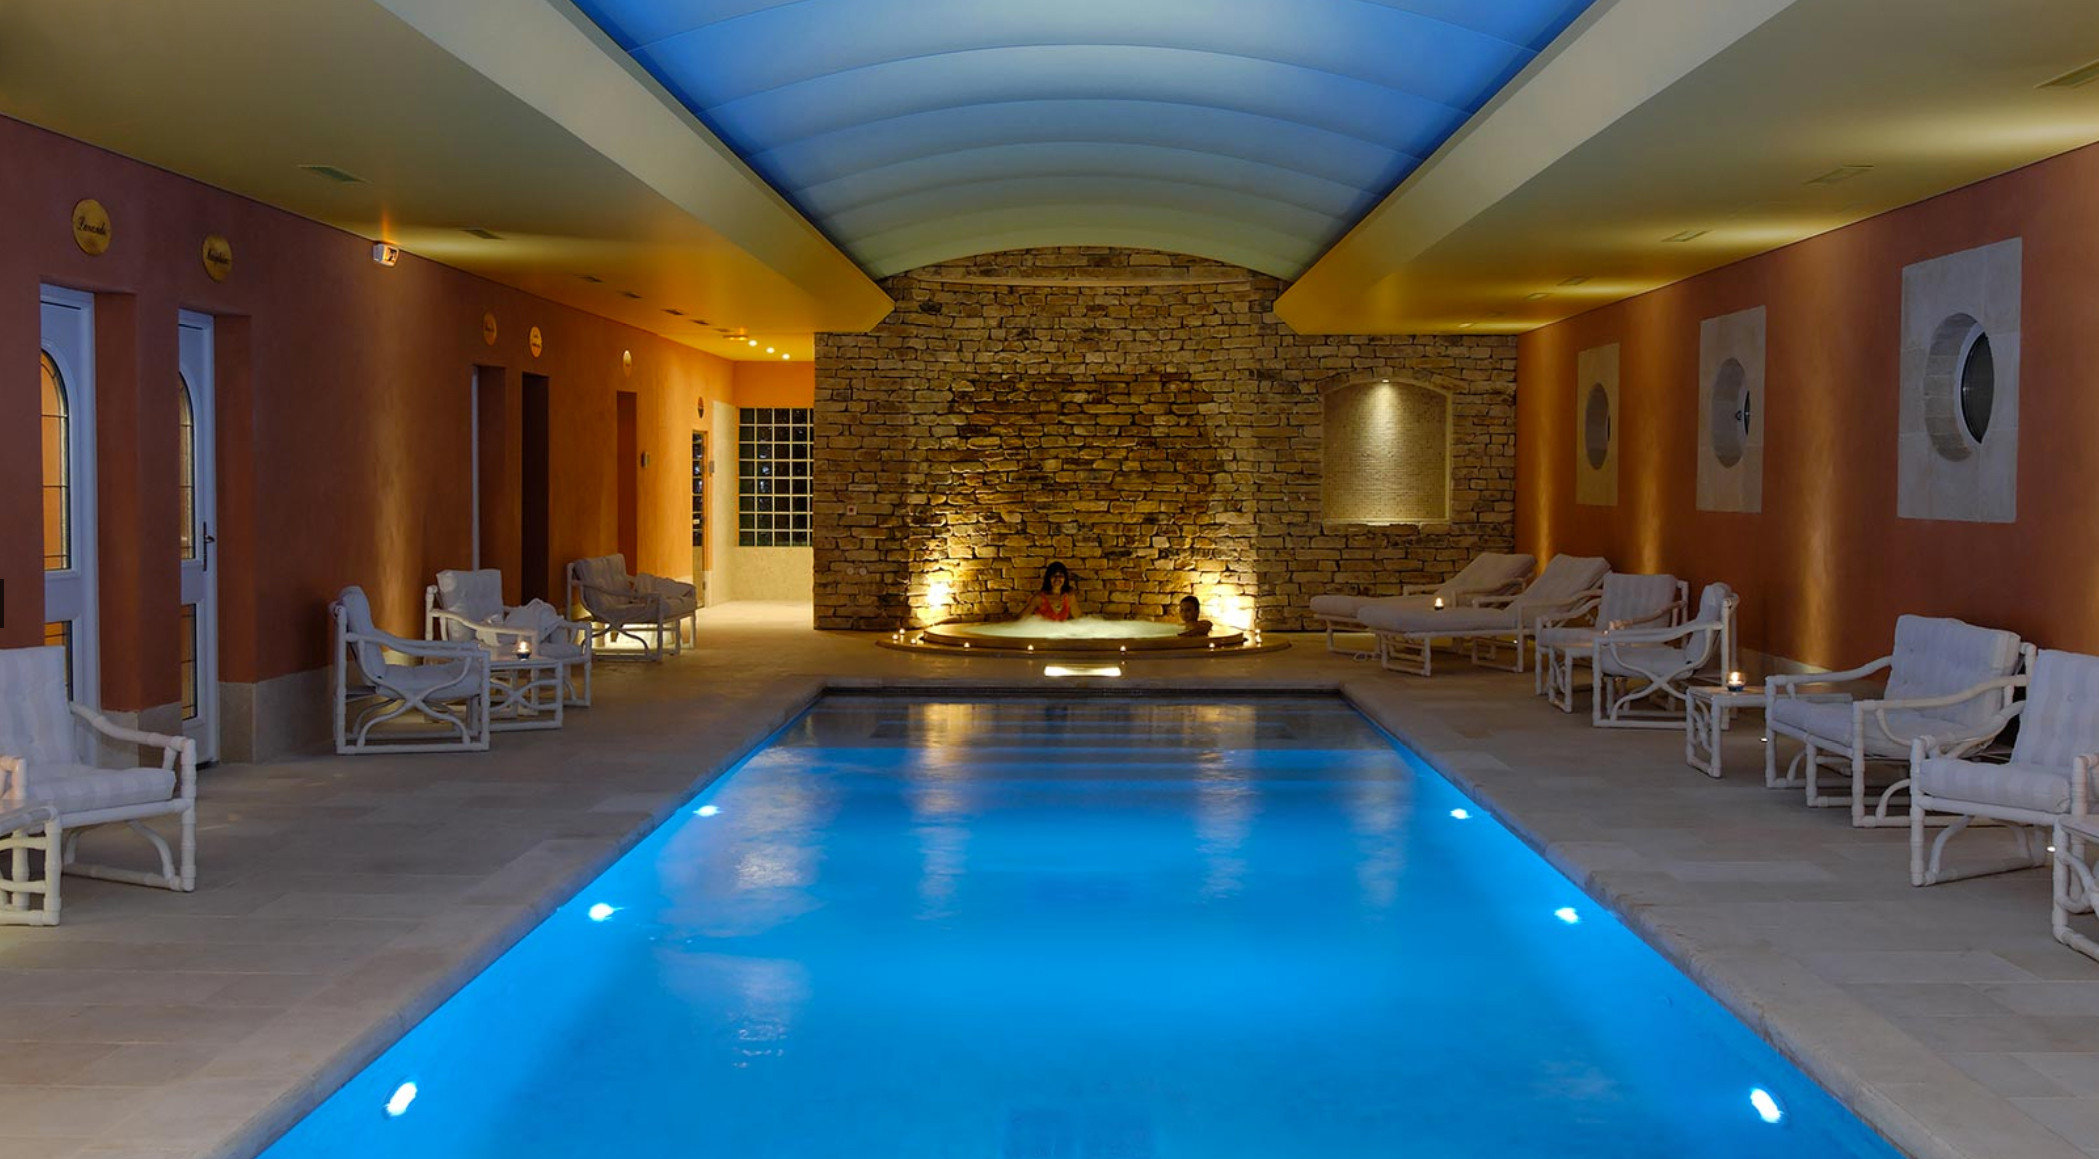 swimming pool property Resort function hall Dining billiard room Villa mansion blue palace convention center